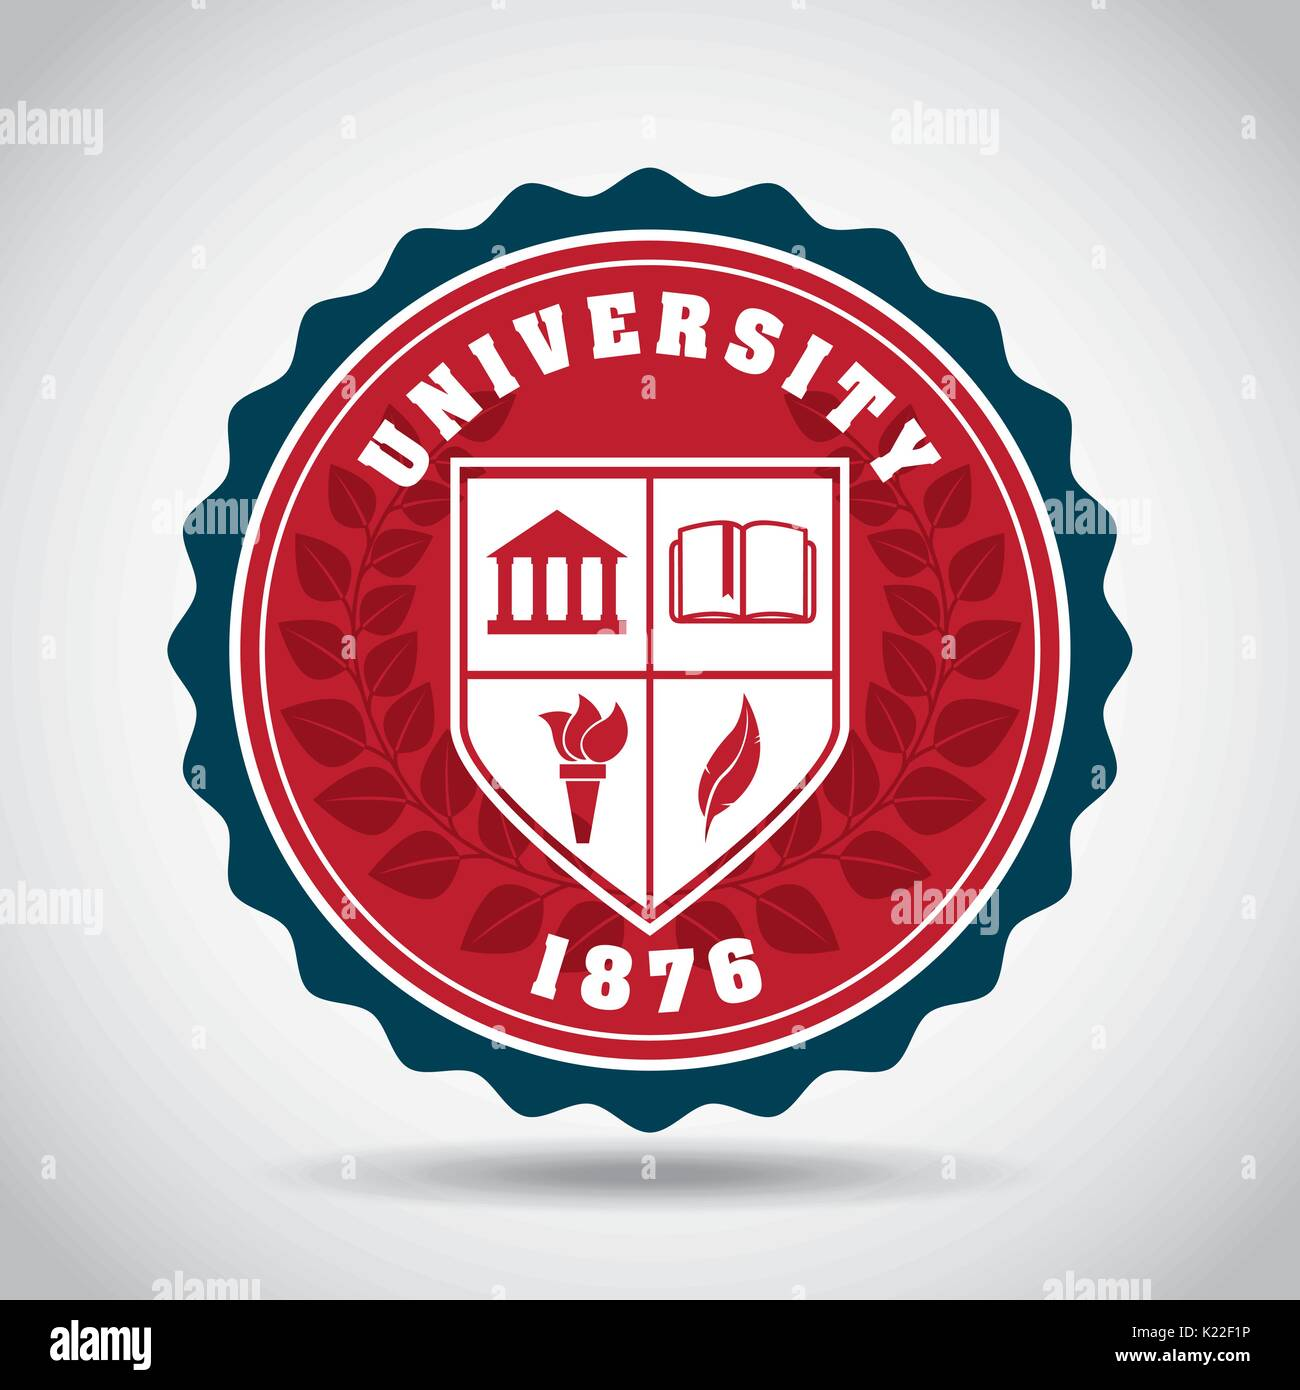 college emblem stock photos amp college emblem stock images